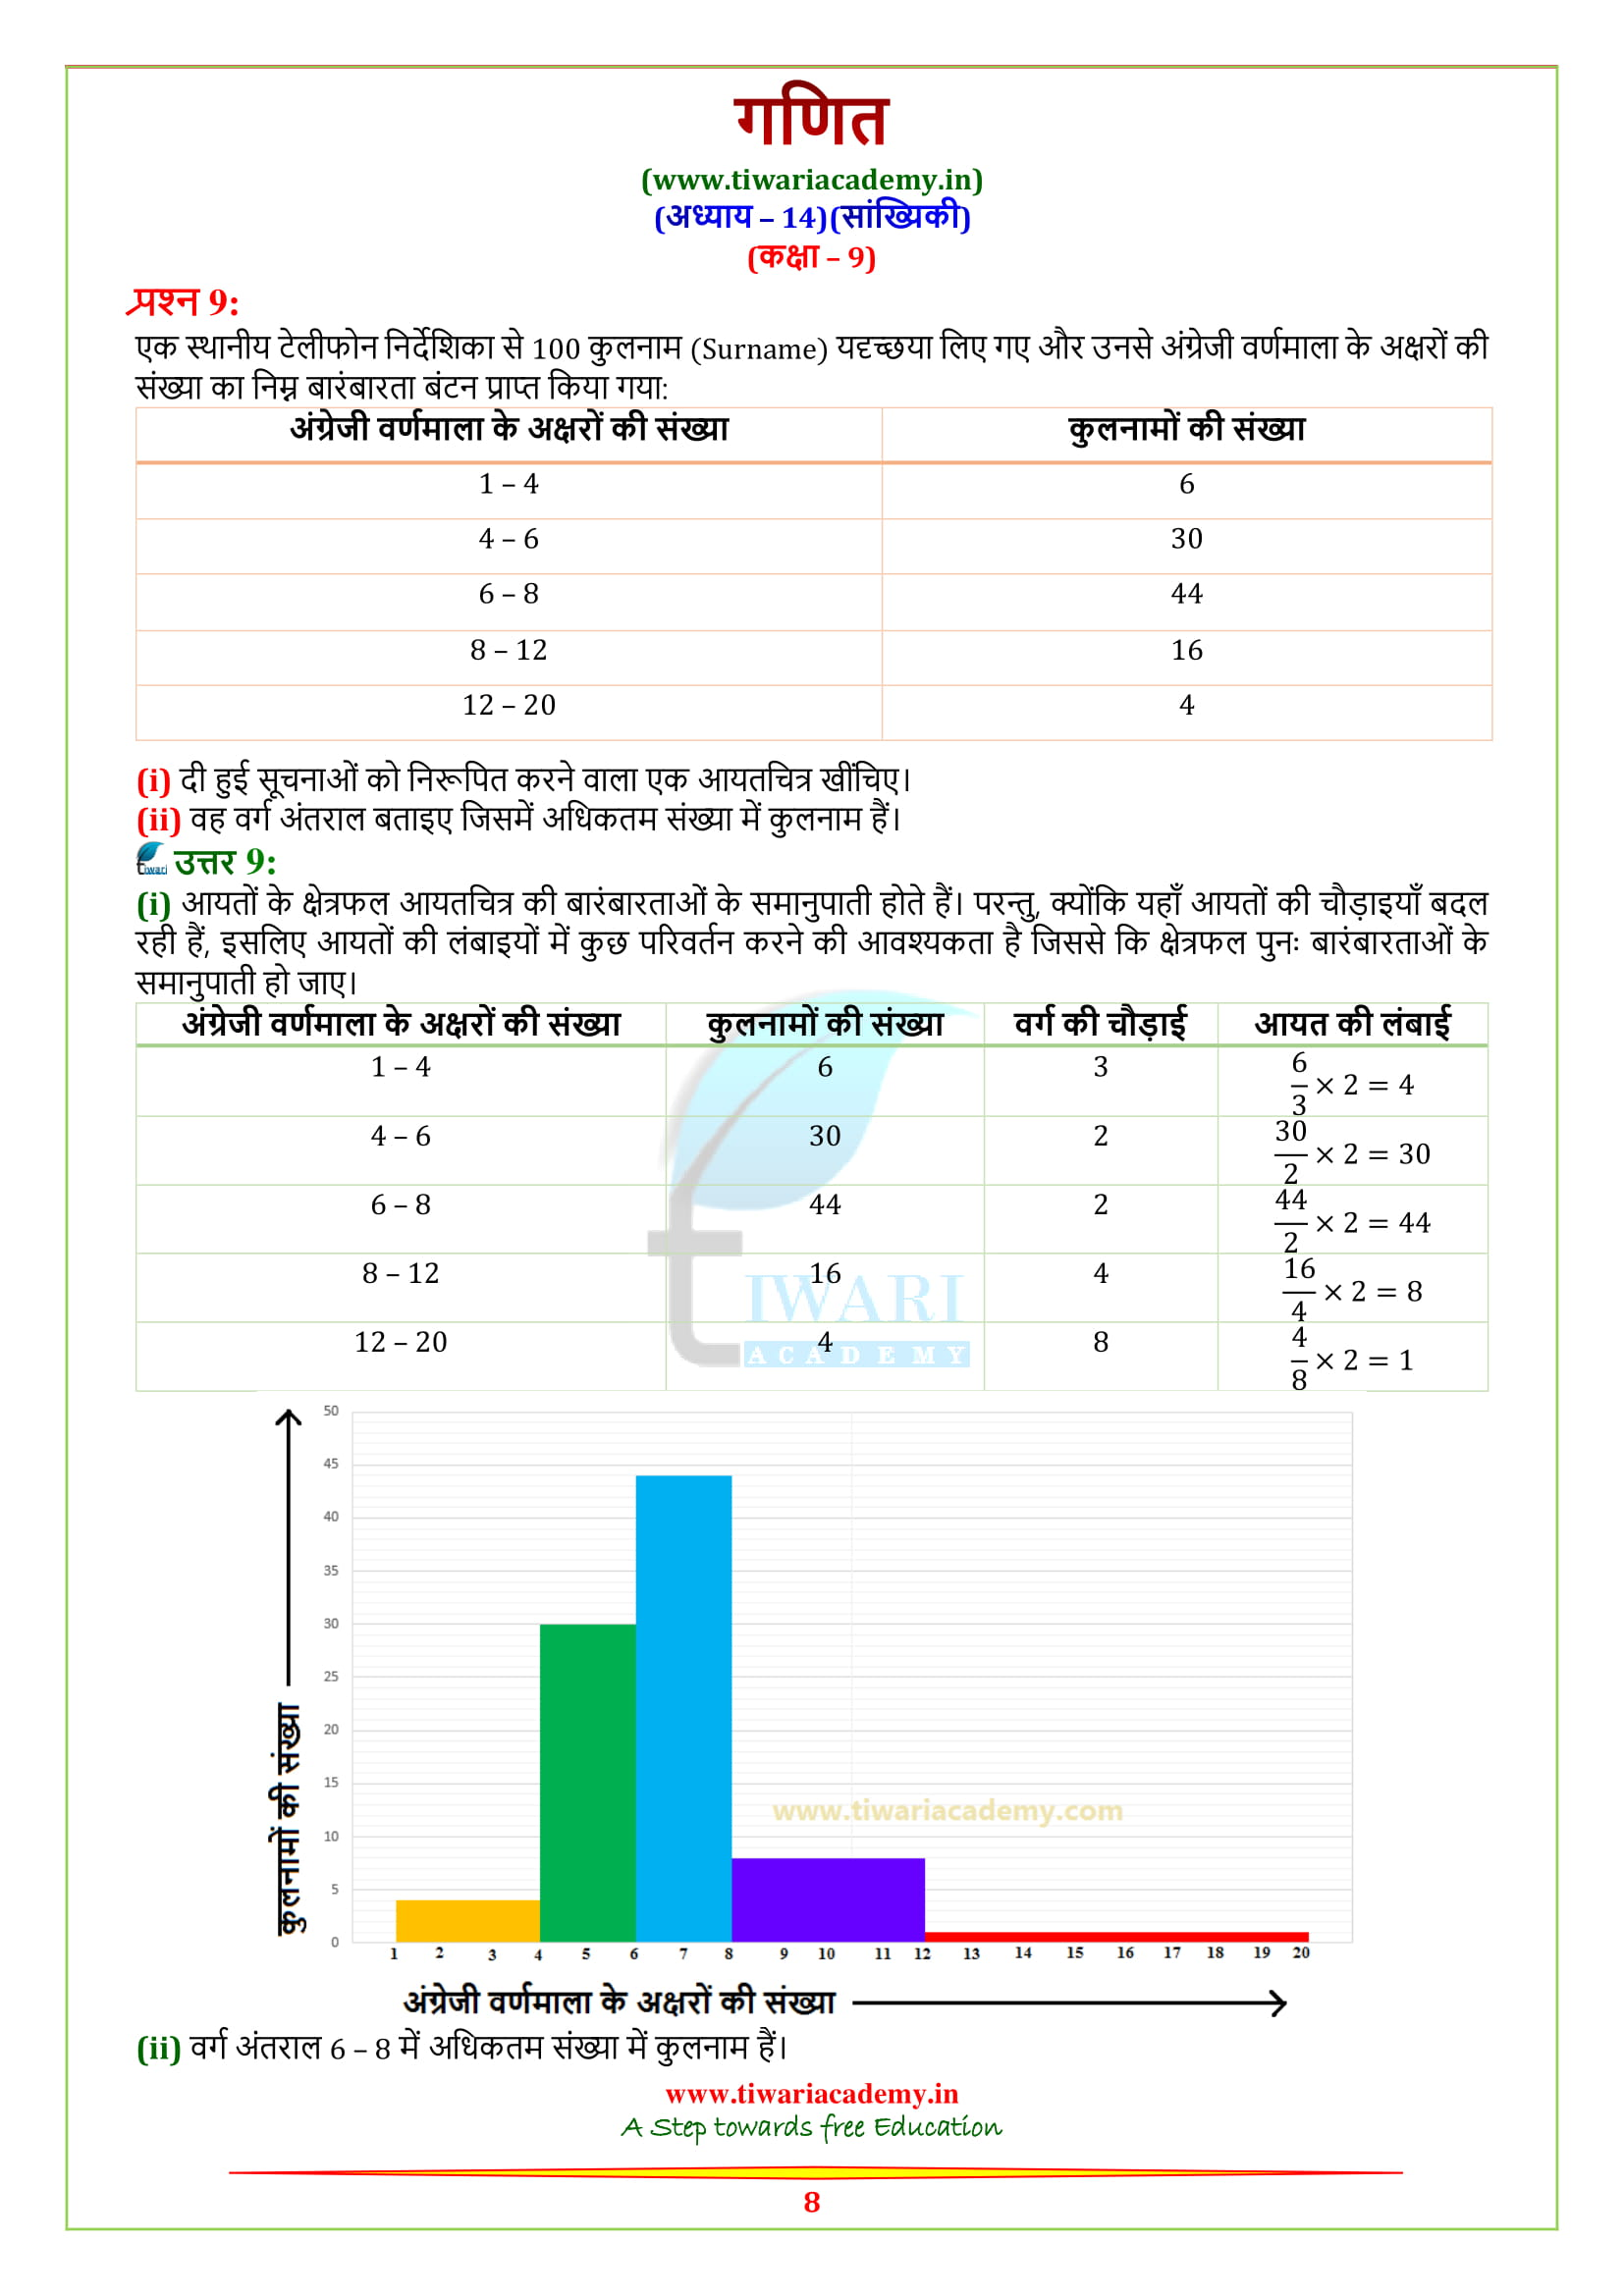 NCERT Solutions for class 9 Maths Exercise 14.3 for 2018-19